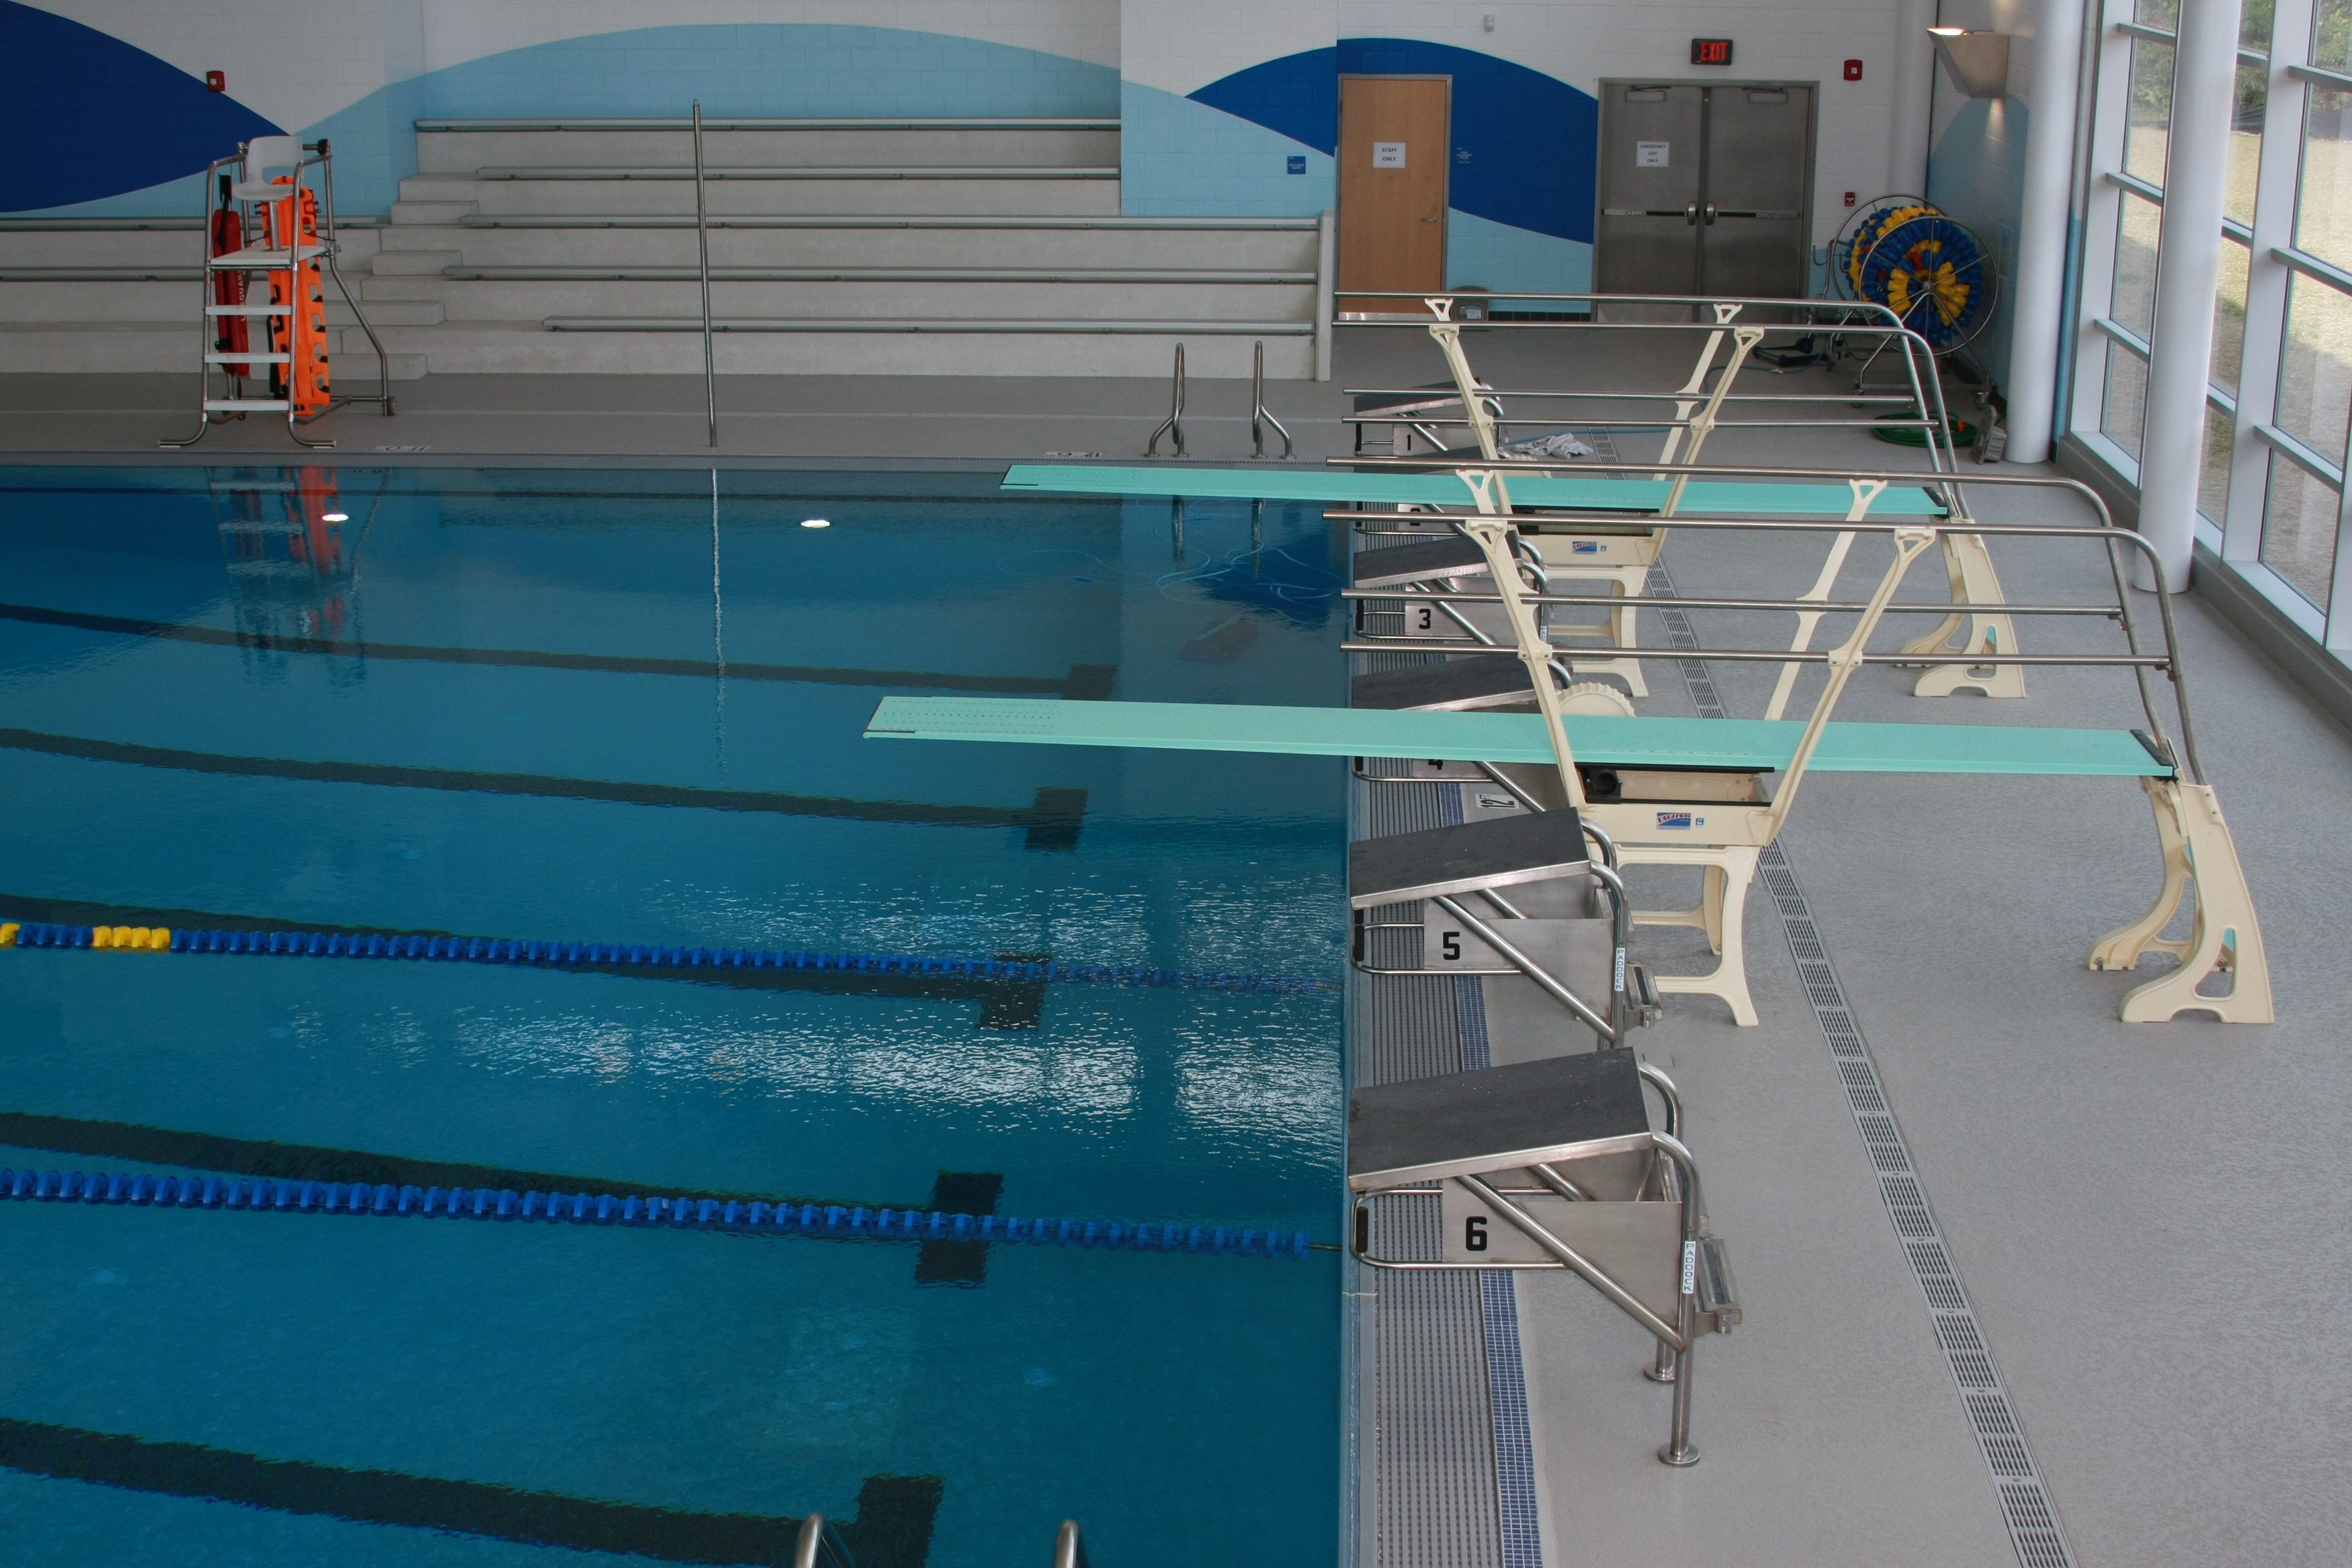 Public Swimming Pools With Diving Boards city of norfolk, virginia - official website